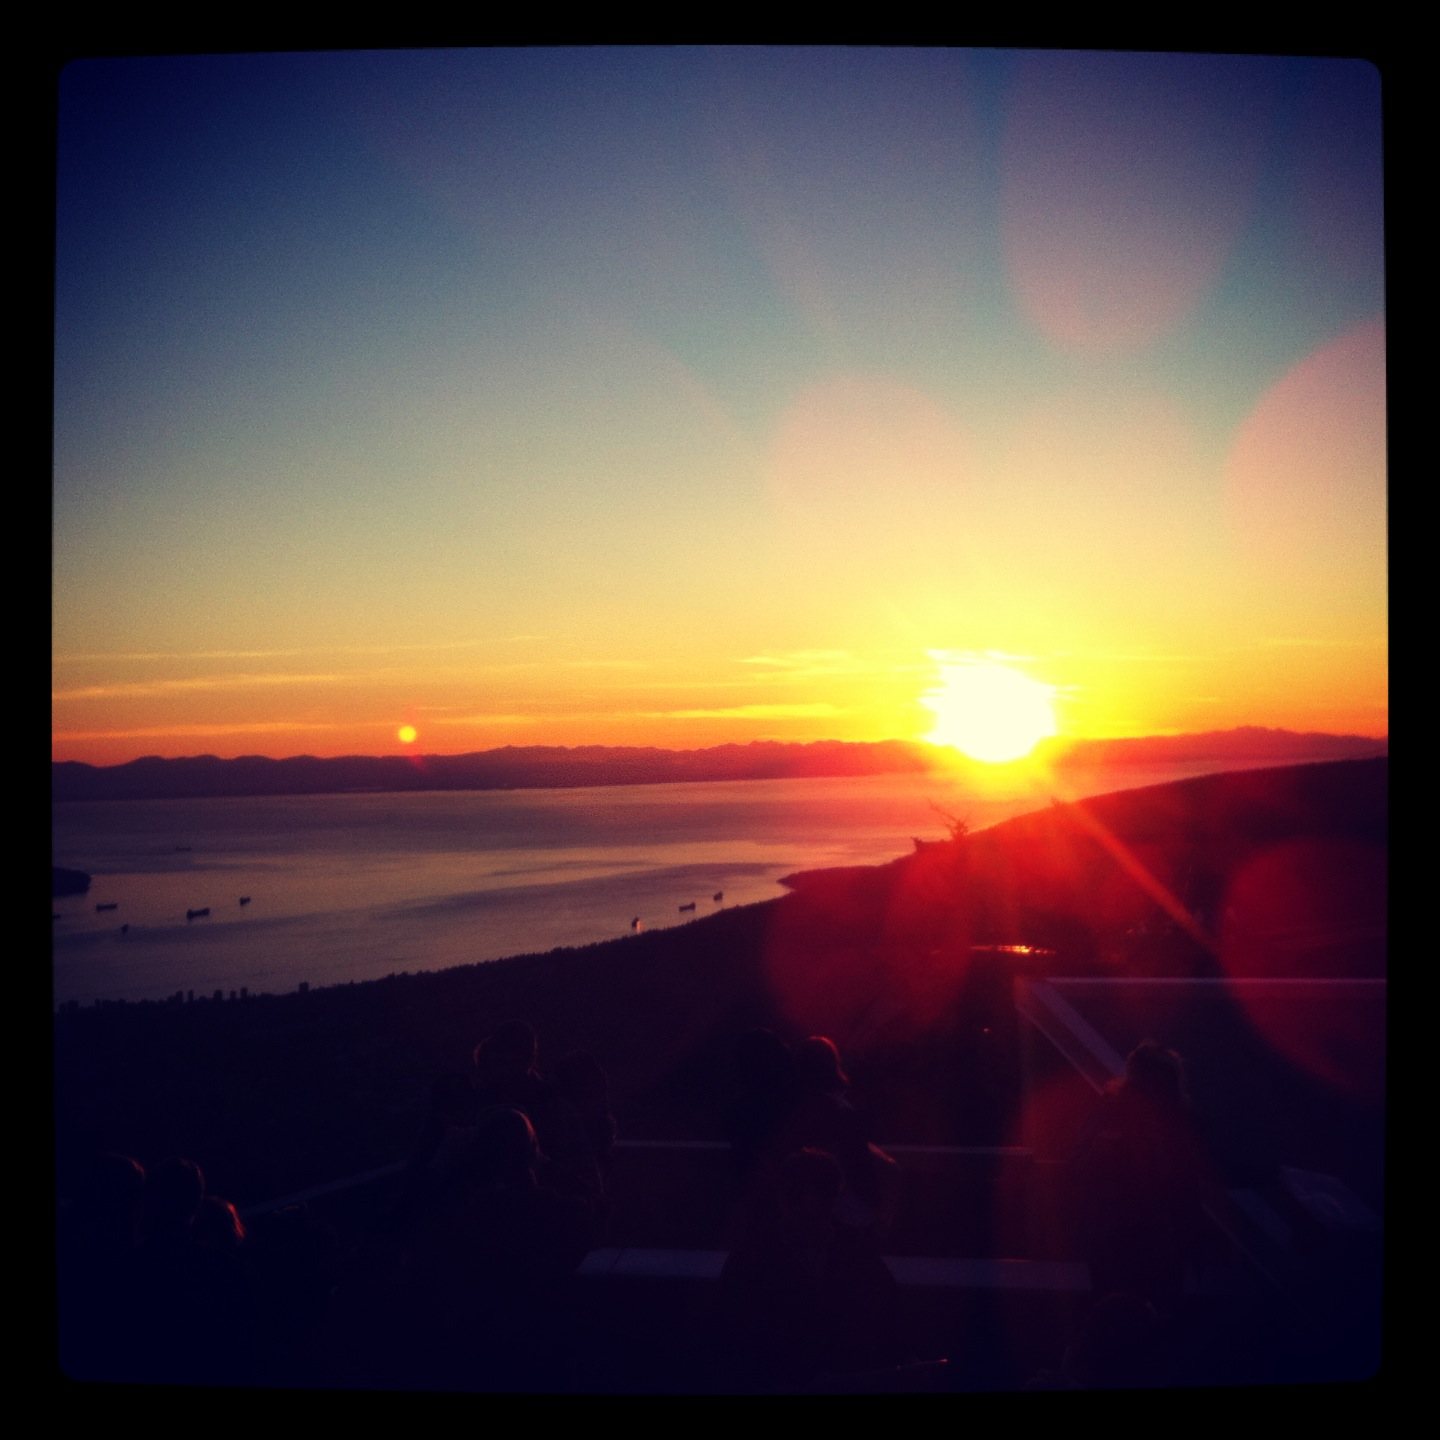 Grouse Mountain is definitely one of my favorite places in the city to catch the sunset!